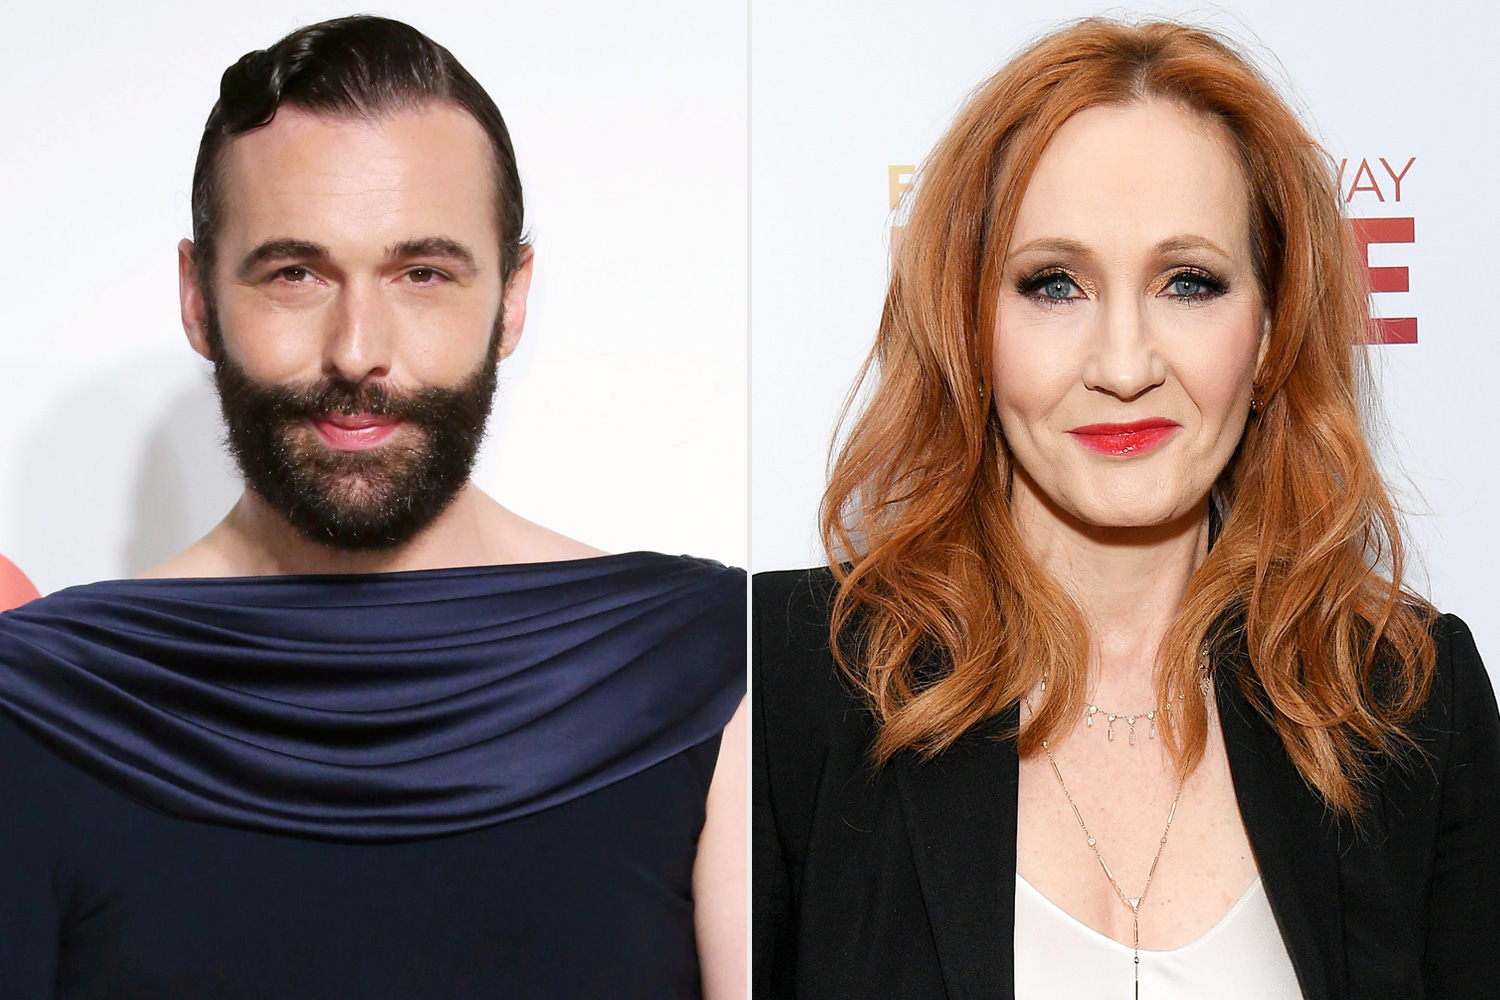 Jonathan Van Ness Slams JK Rowling for Transphobic Comments